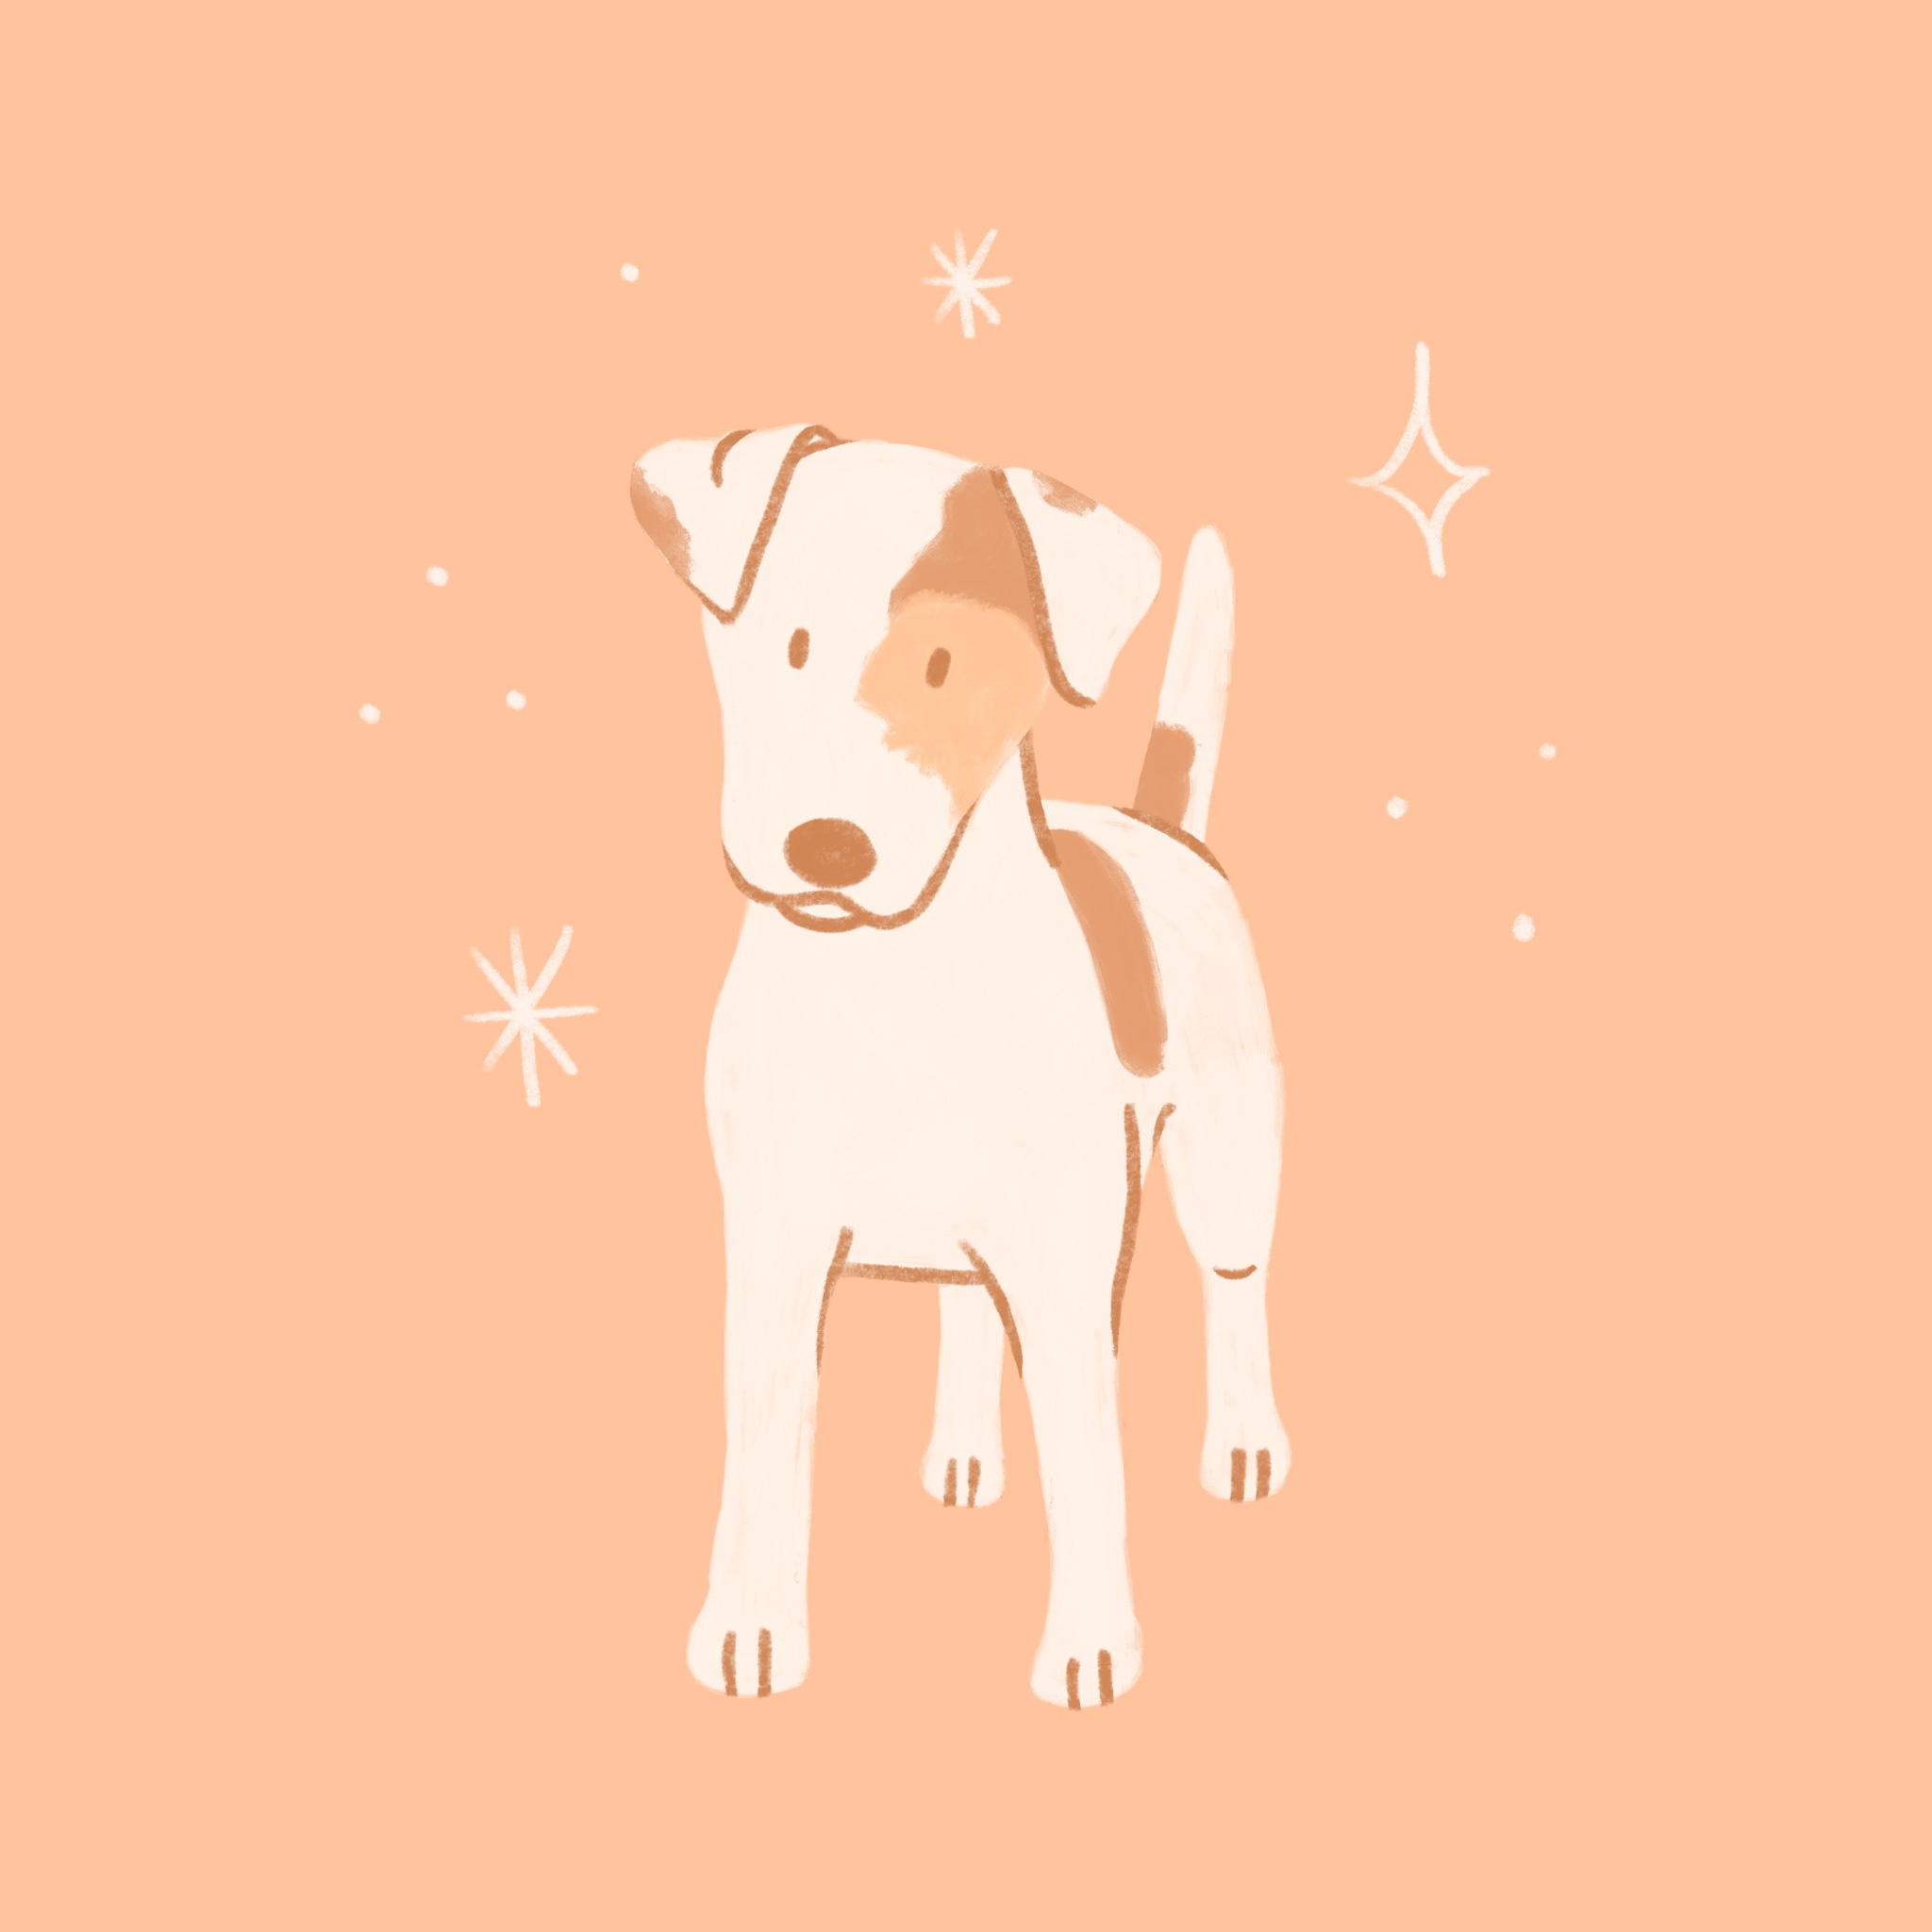 An illustration of a Jack Russell Terrier dog